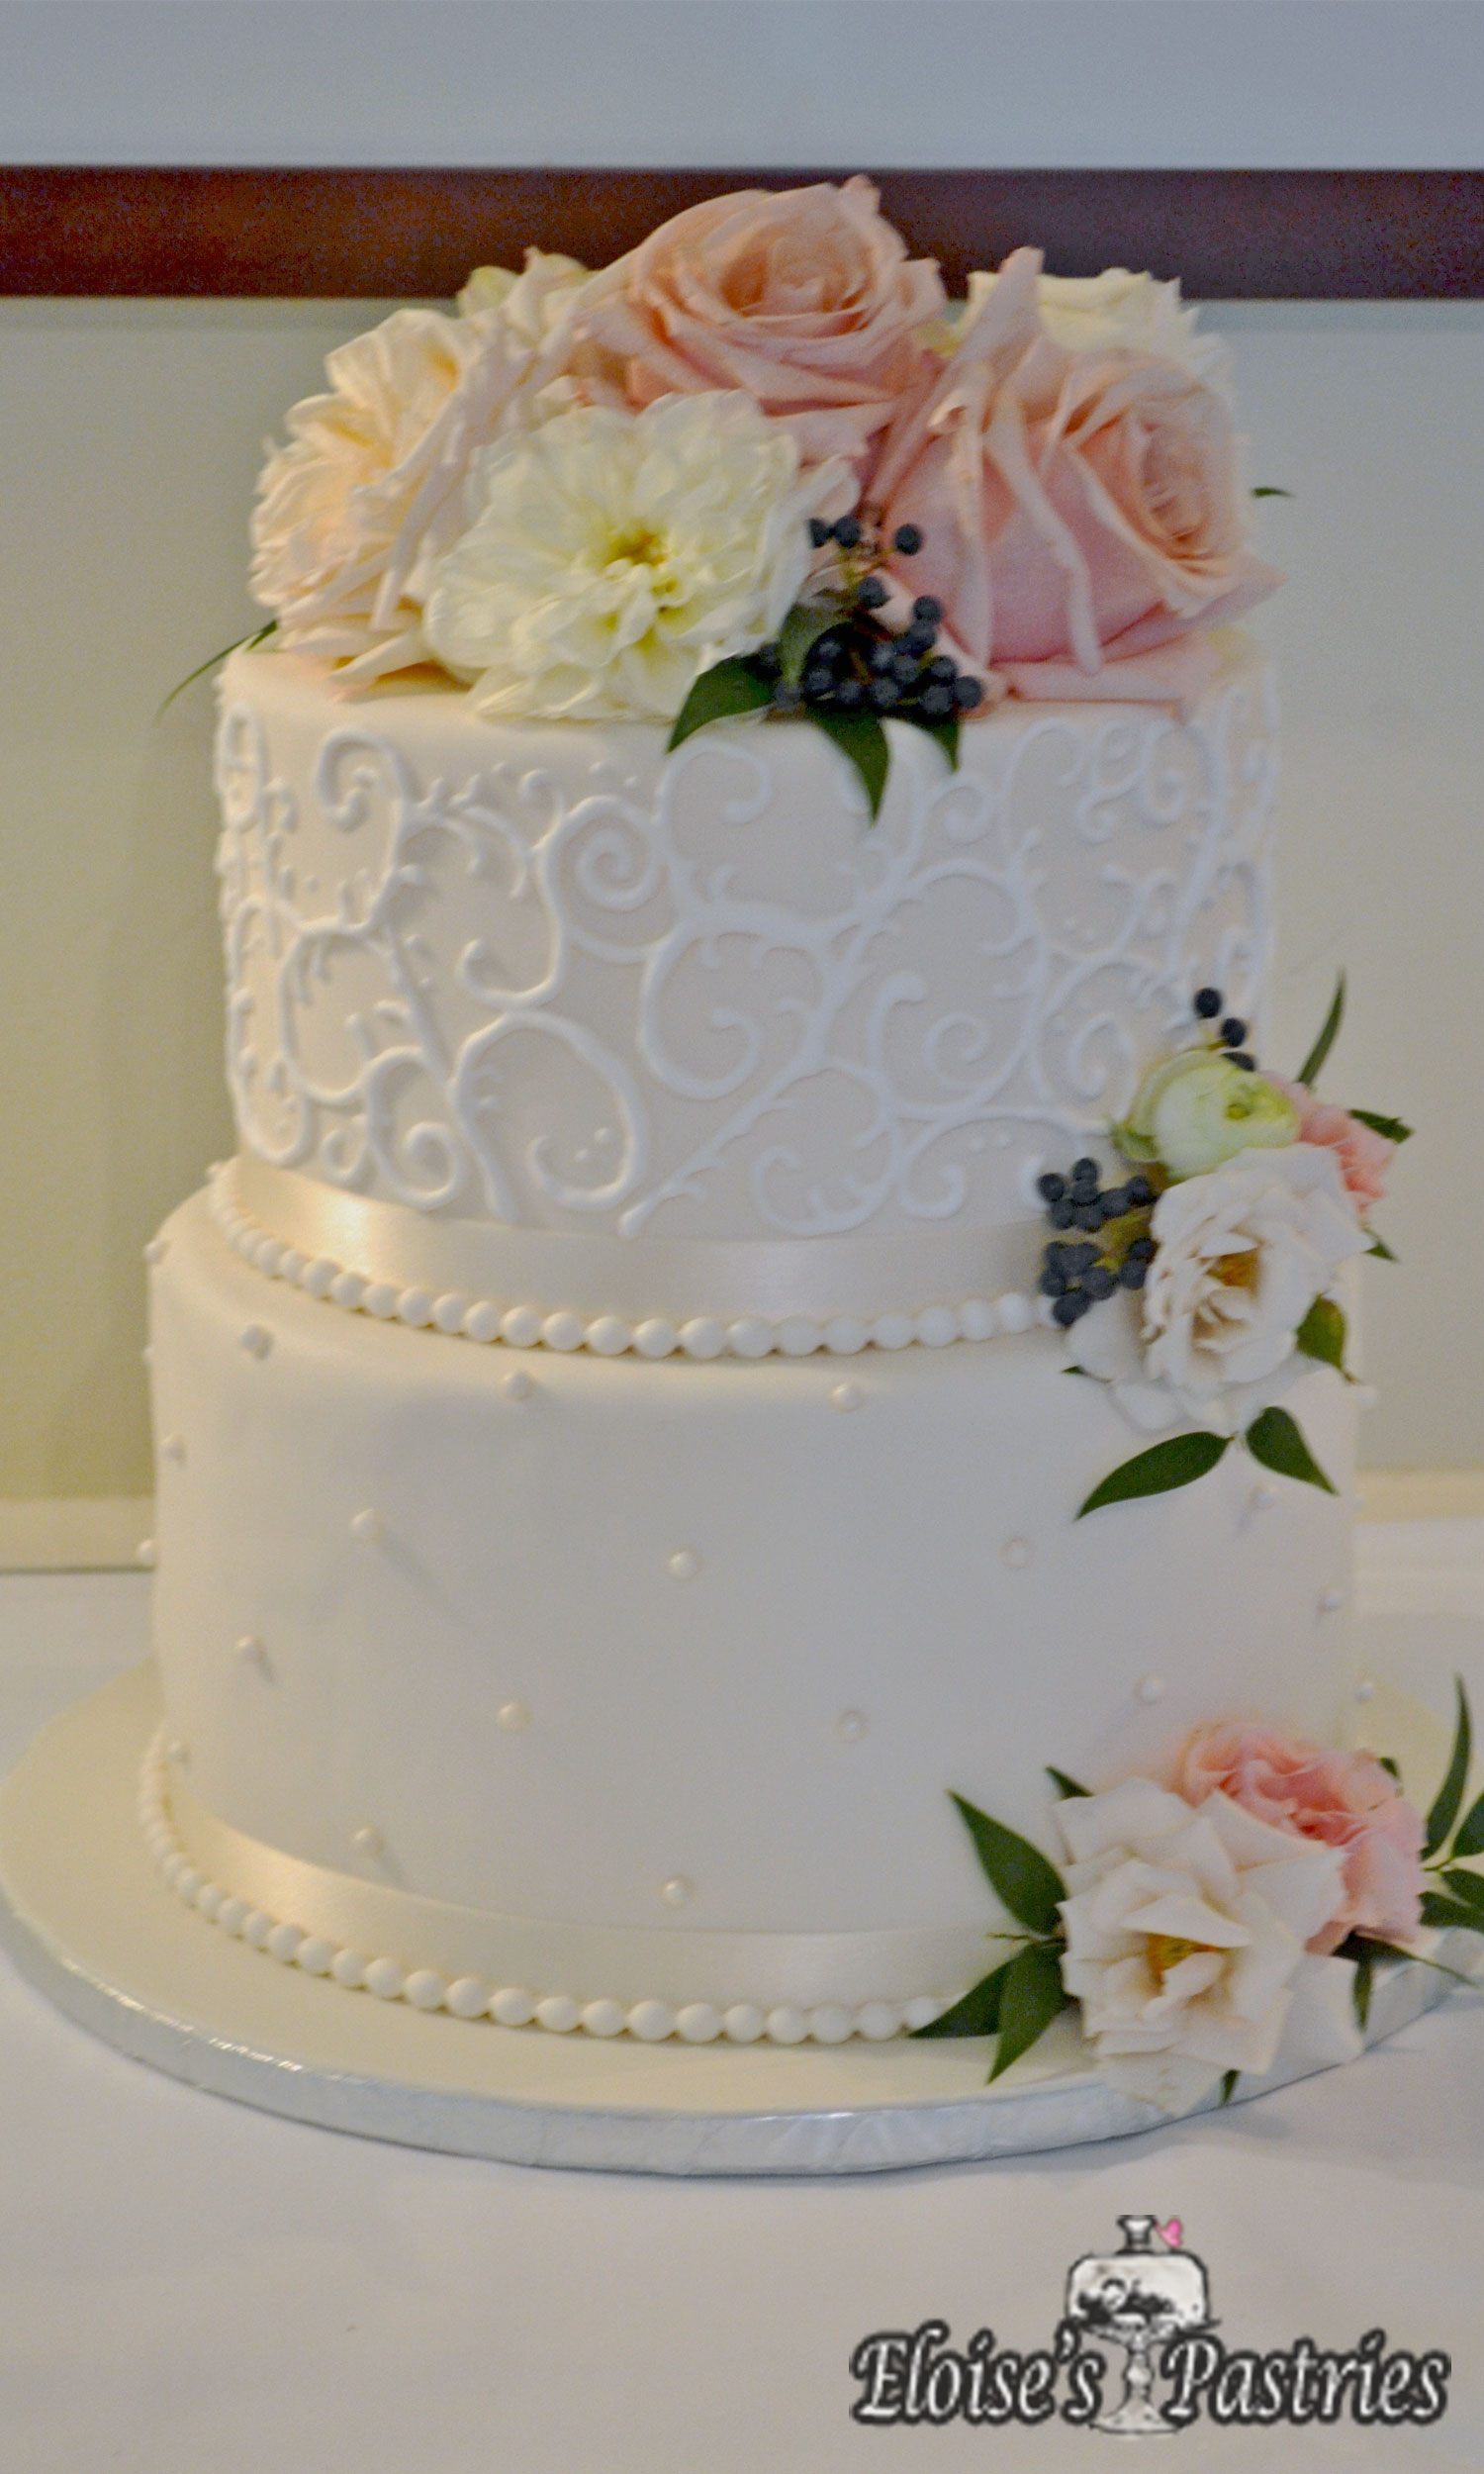 Traditional White Two Tier Wedding Cake with Flowers